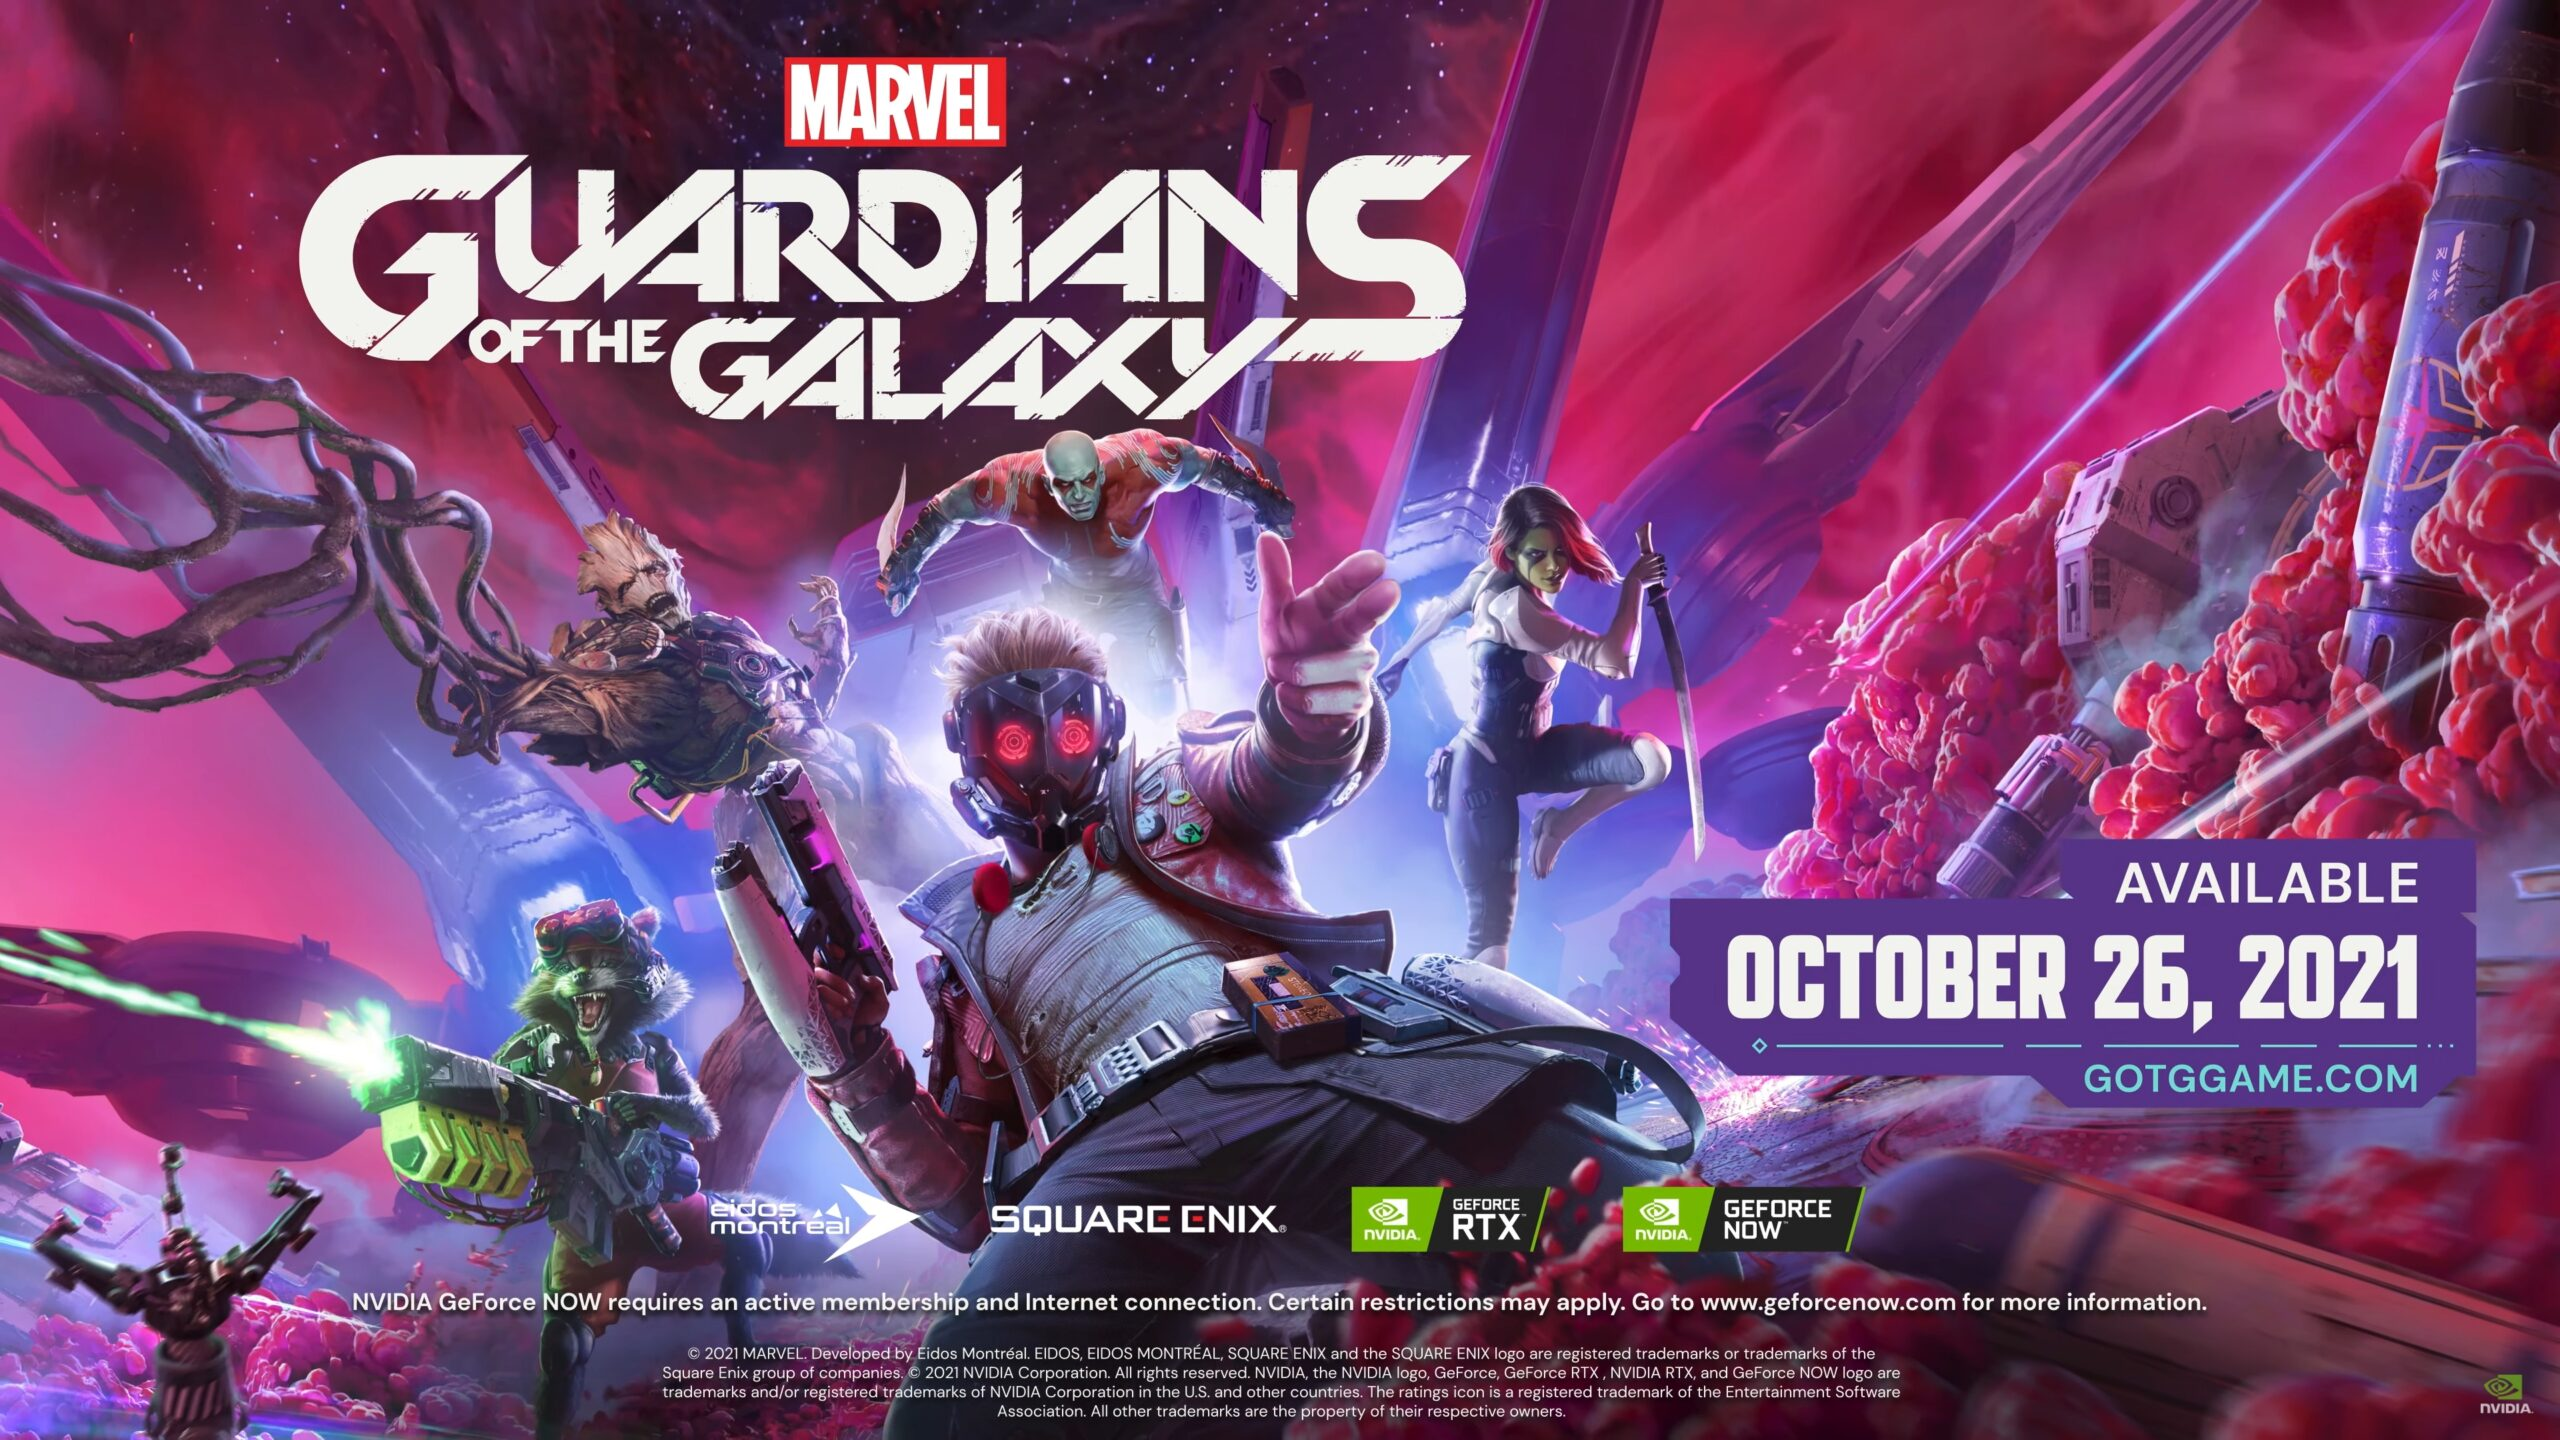 DLSS and Ray Traced Reflections will be supported in Marvel's Guardians of the Galaxy; DLSS and/or Ray Tracing will be added to Chivalry 2, Dying Light 2, and other games.